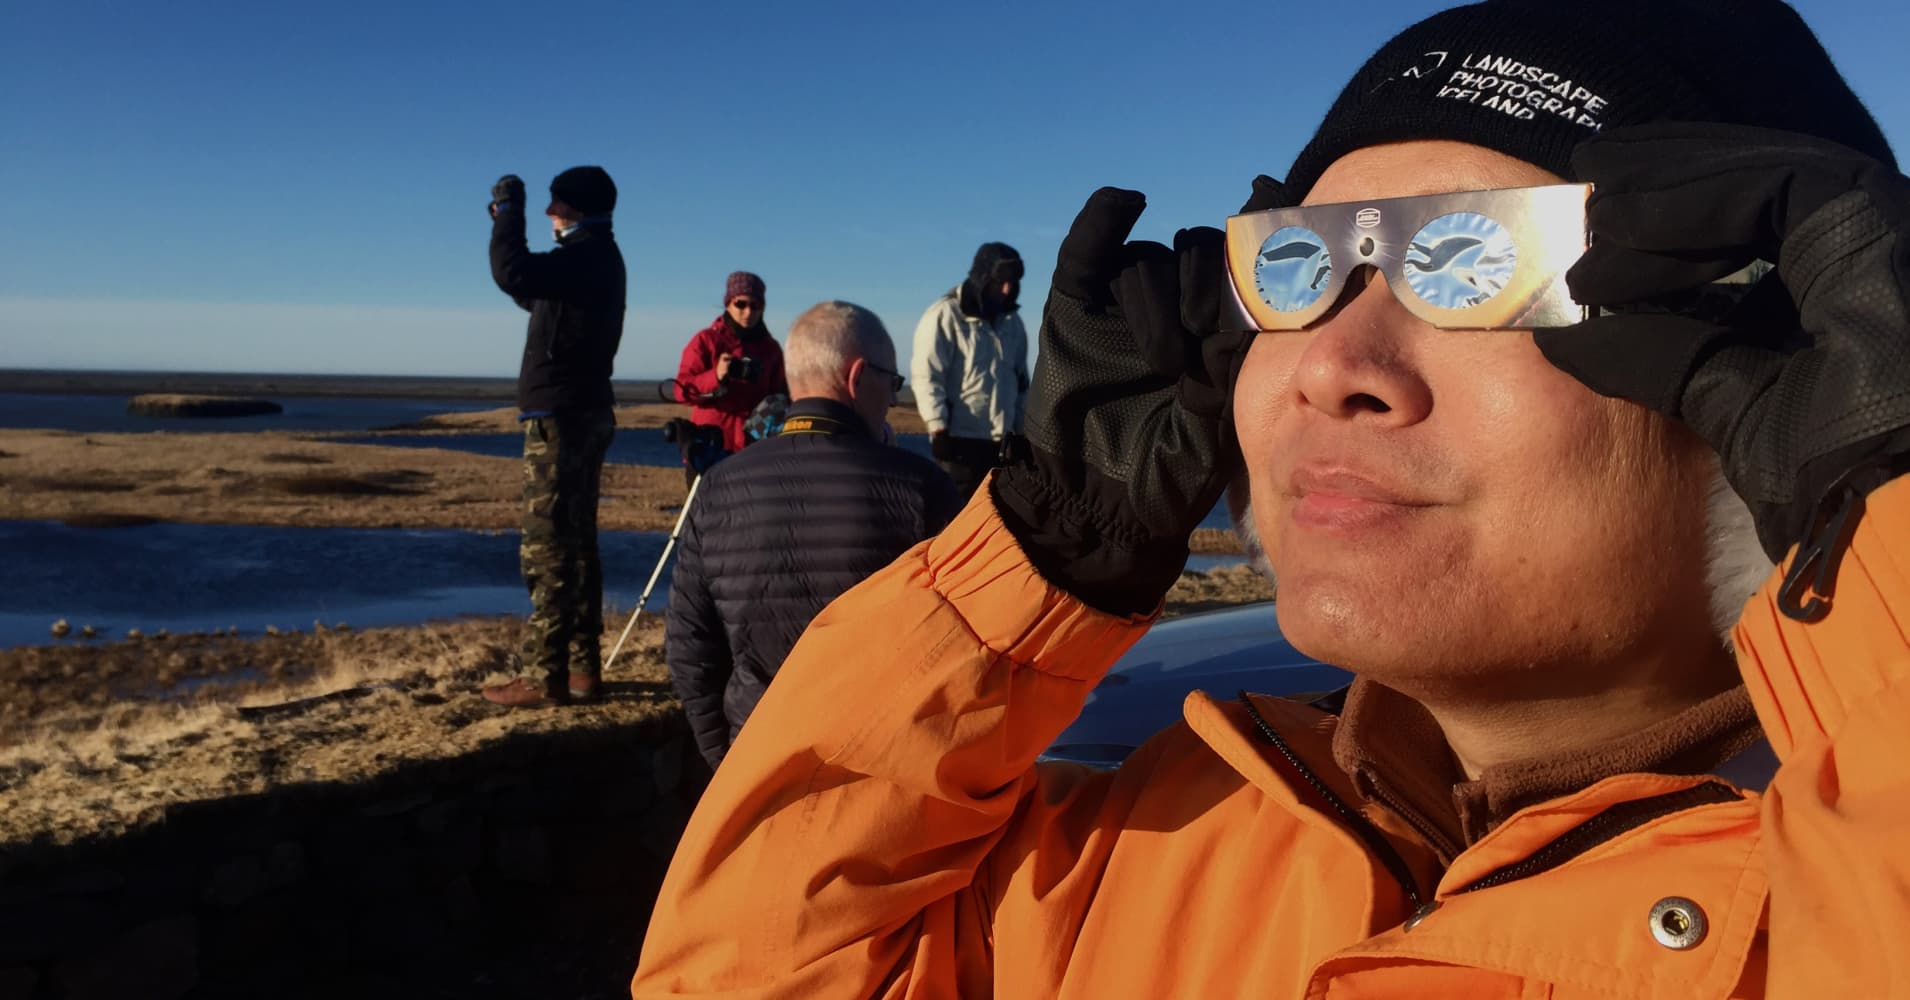 People watch the solar eclipse on march 20, 2015 in Höfn, South Iceland.